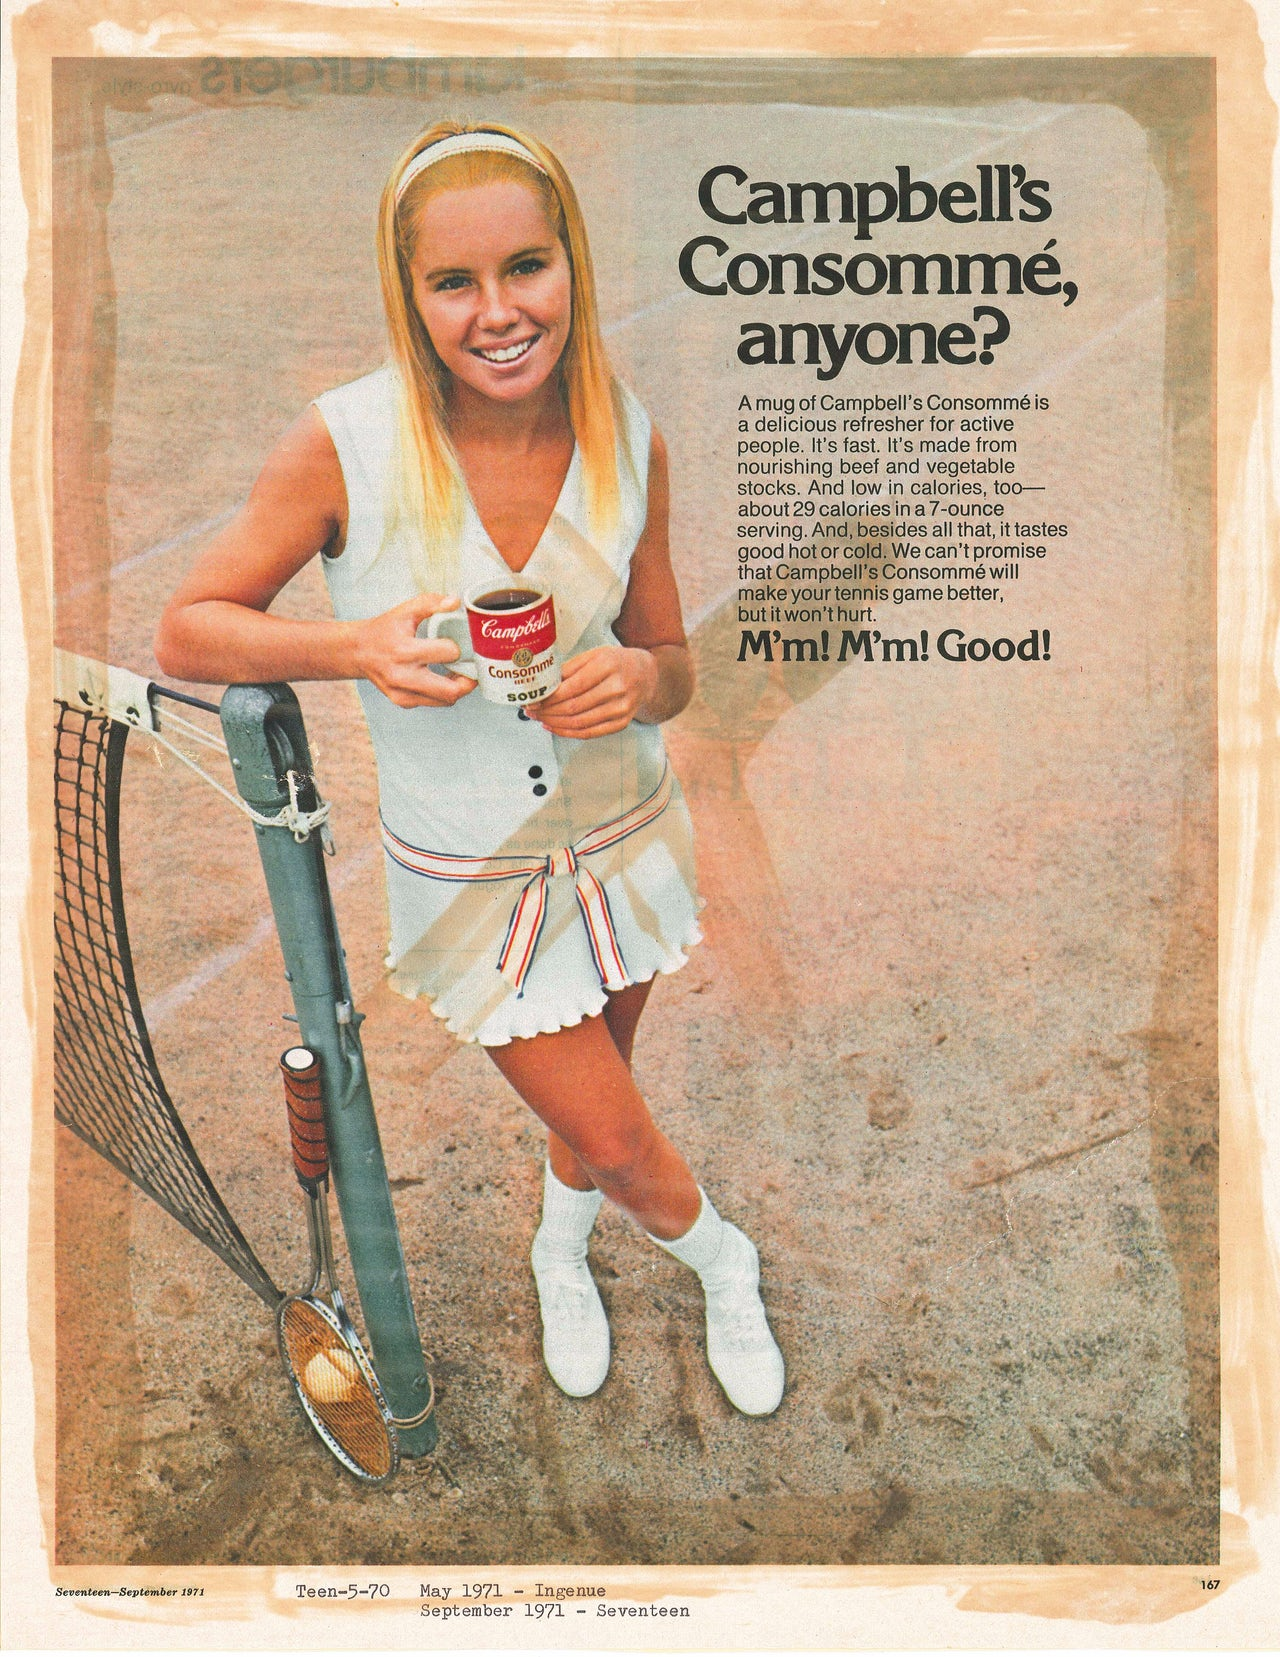 This 1971 Campbell's ad recommends sipping cold consommé, but does not tell us whether that qualifies as sipping a food or a drink.